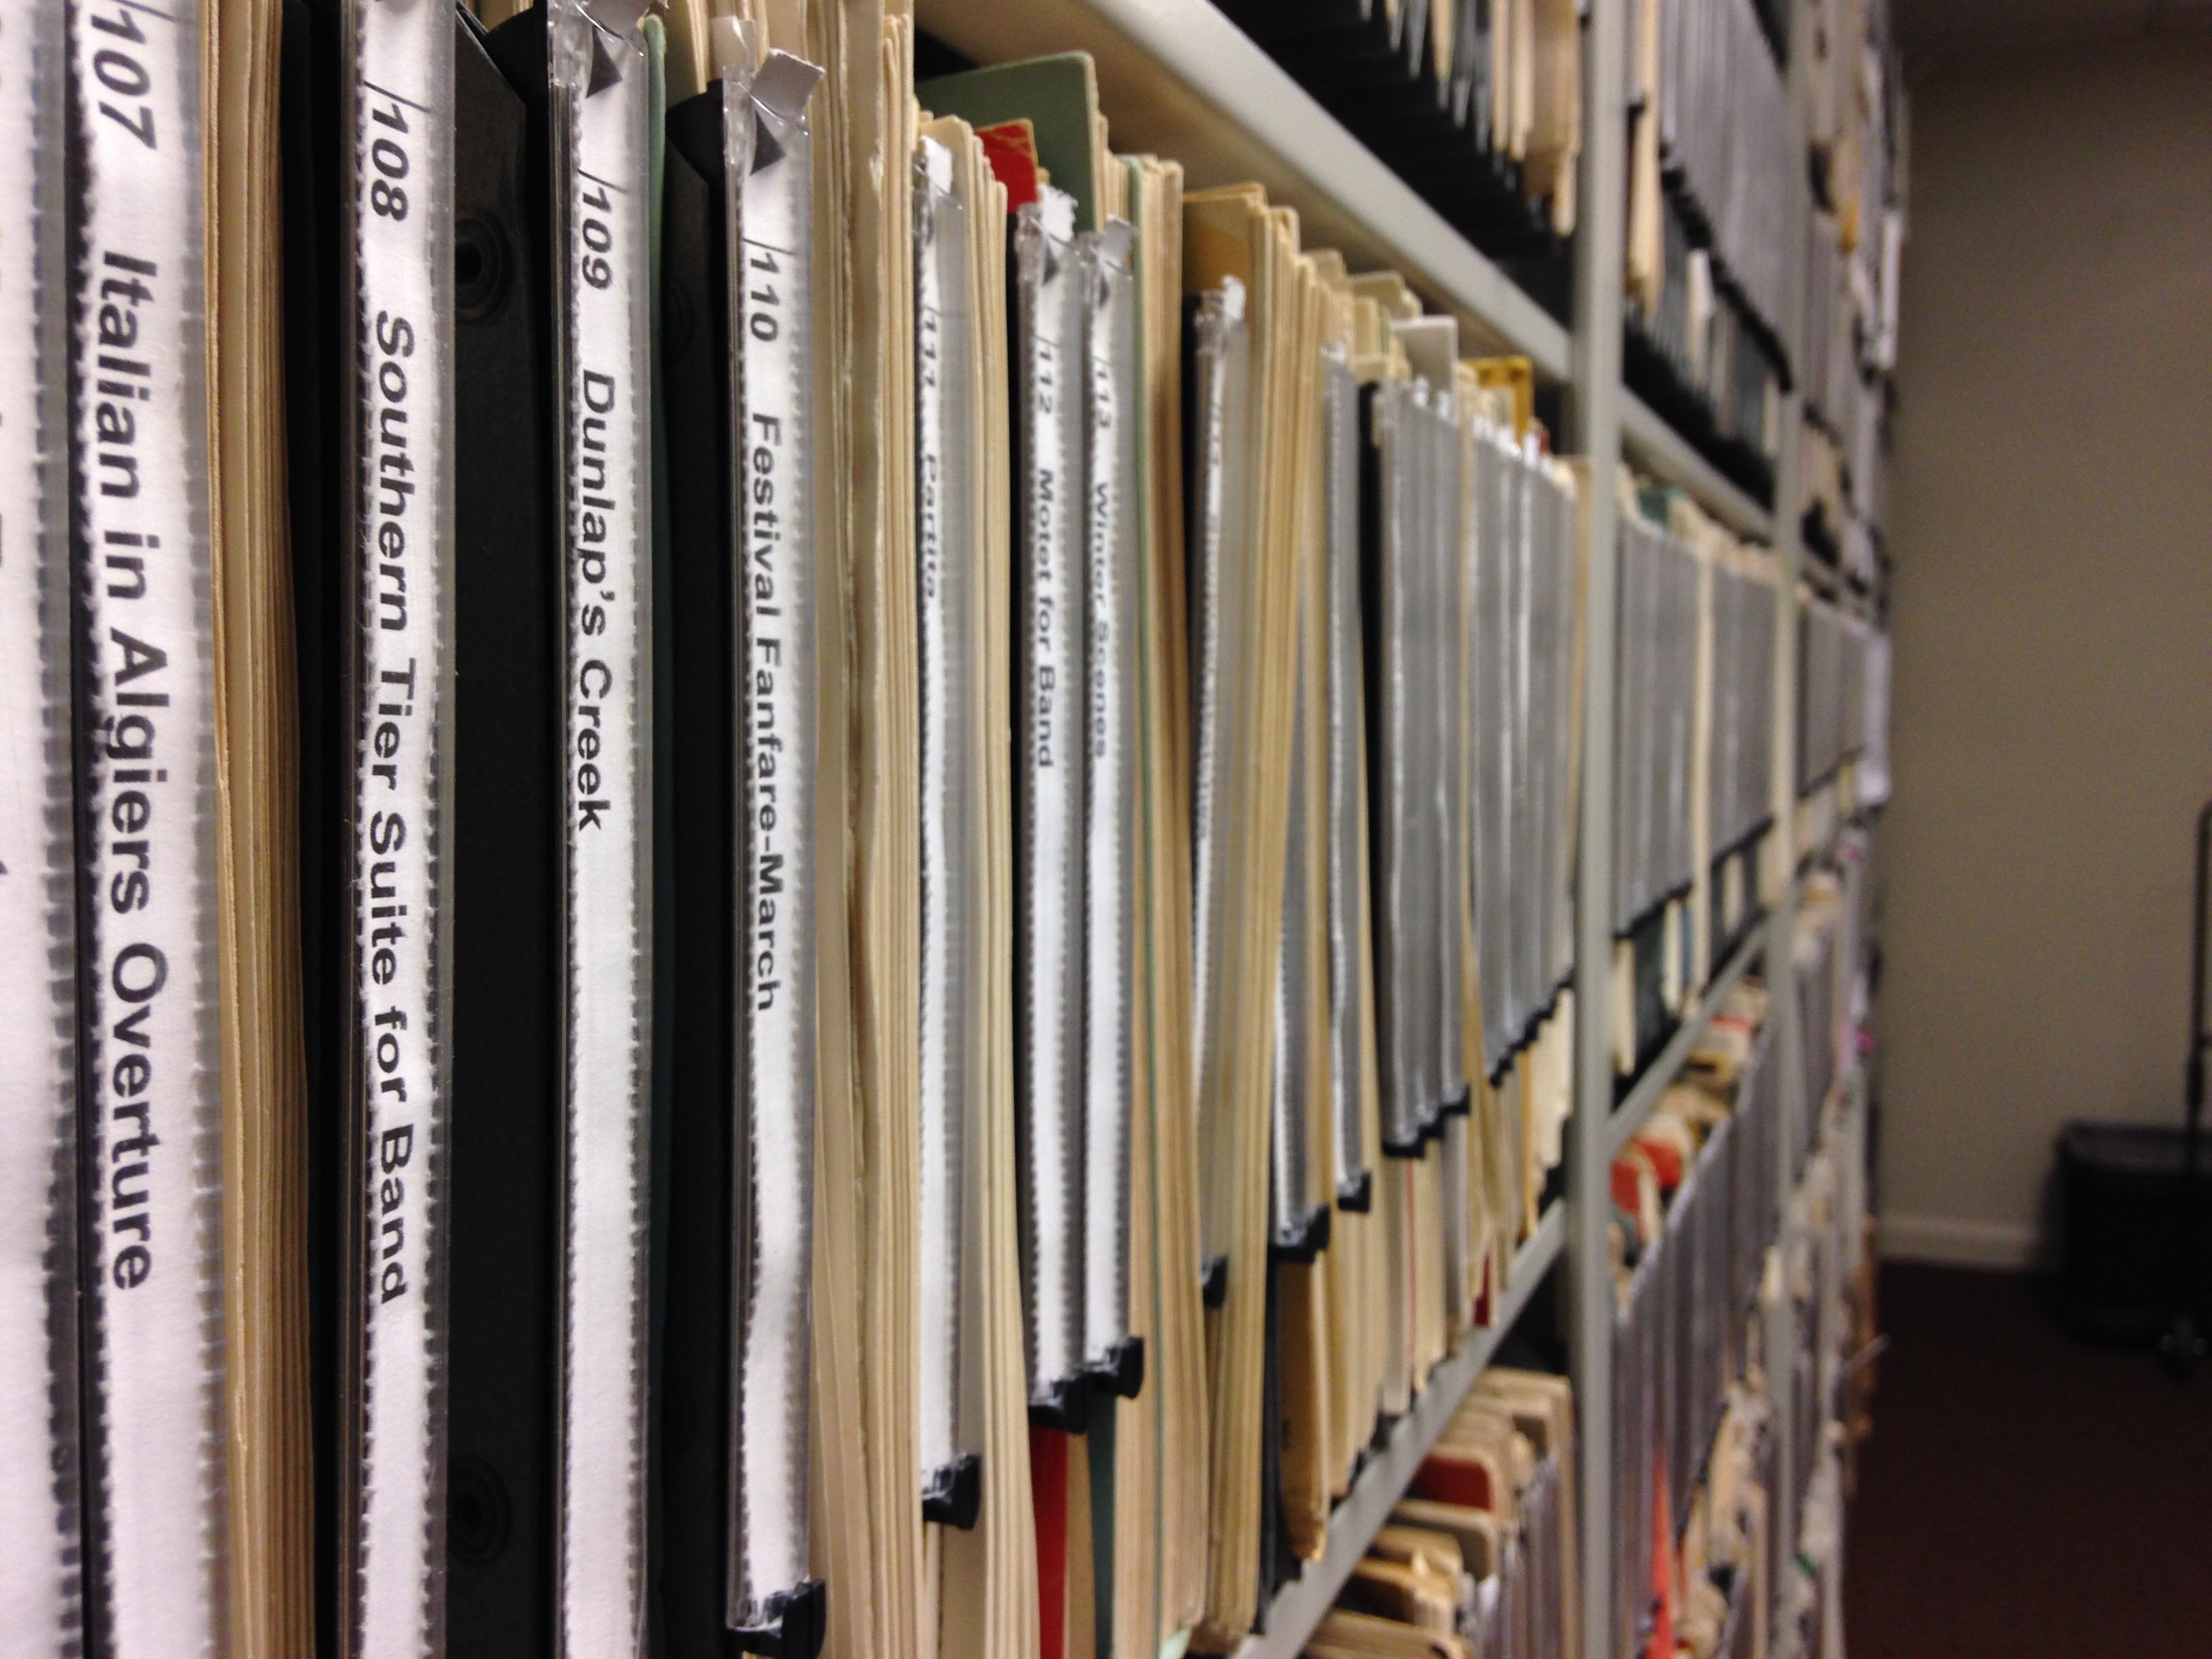 Vertical Sheet Music Storage with easy to read labels.